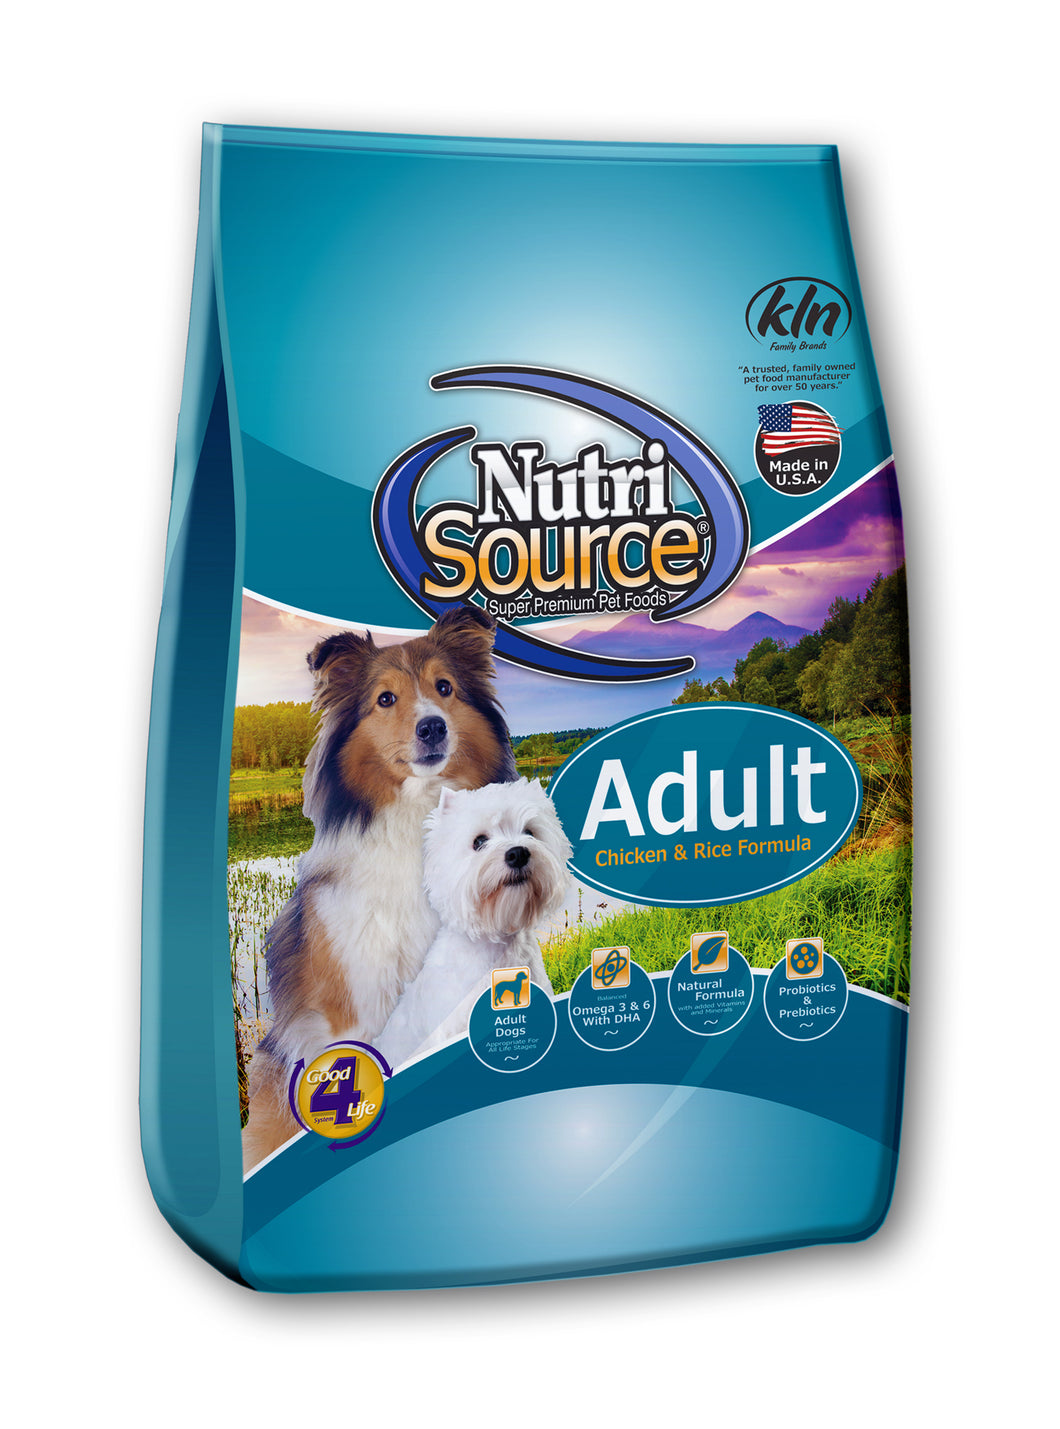 NutriSource Adult - Natural Dawg Cuisine